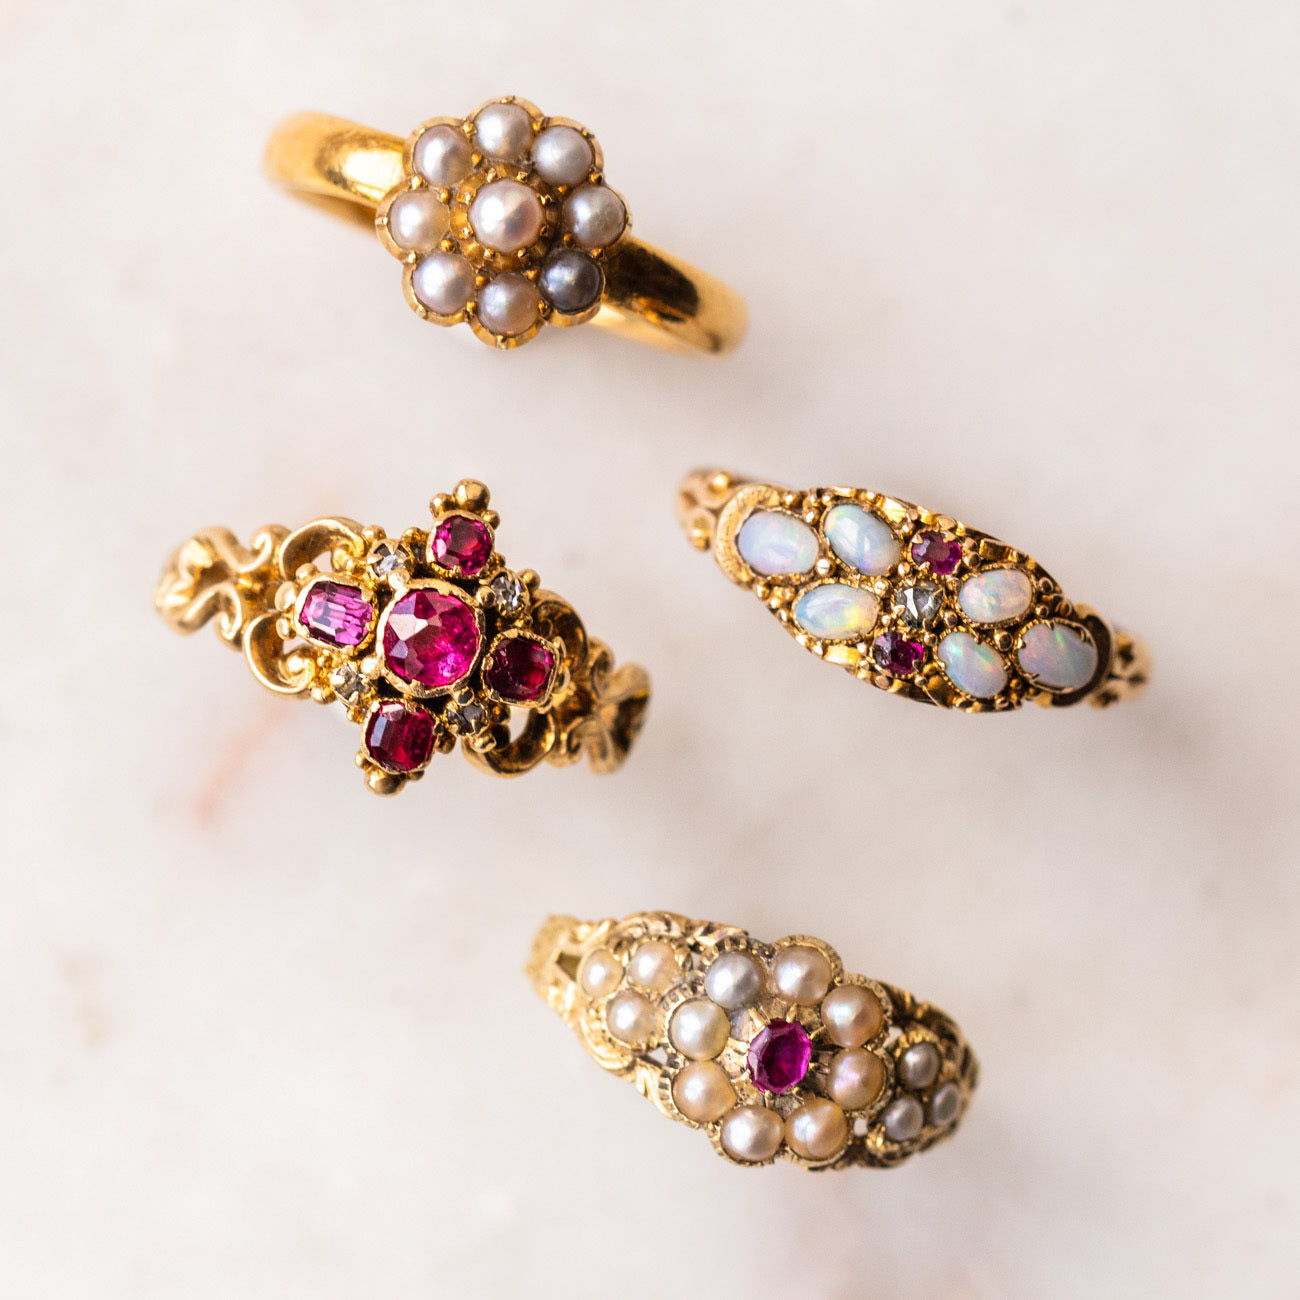 Tiny Treasures Stud Earring Set